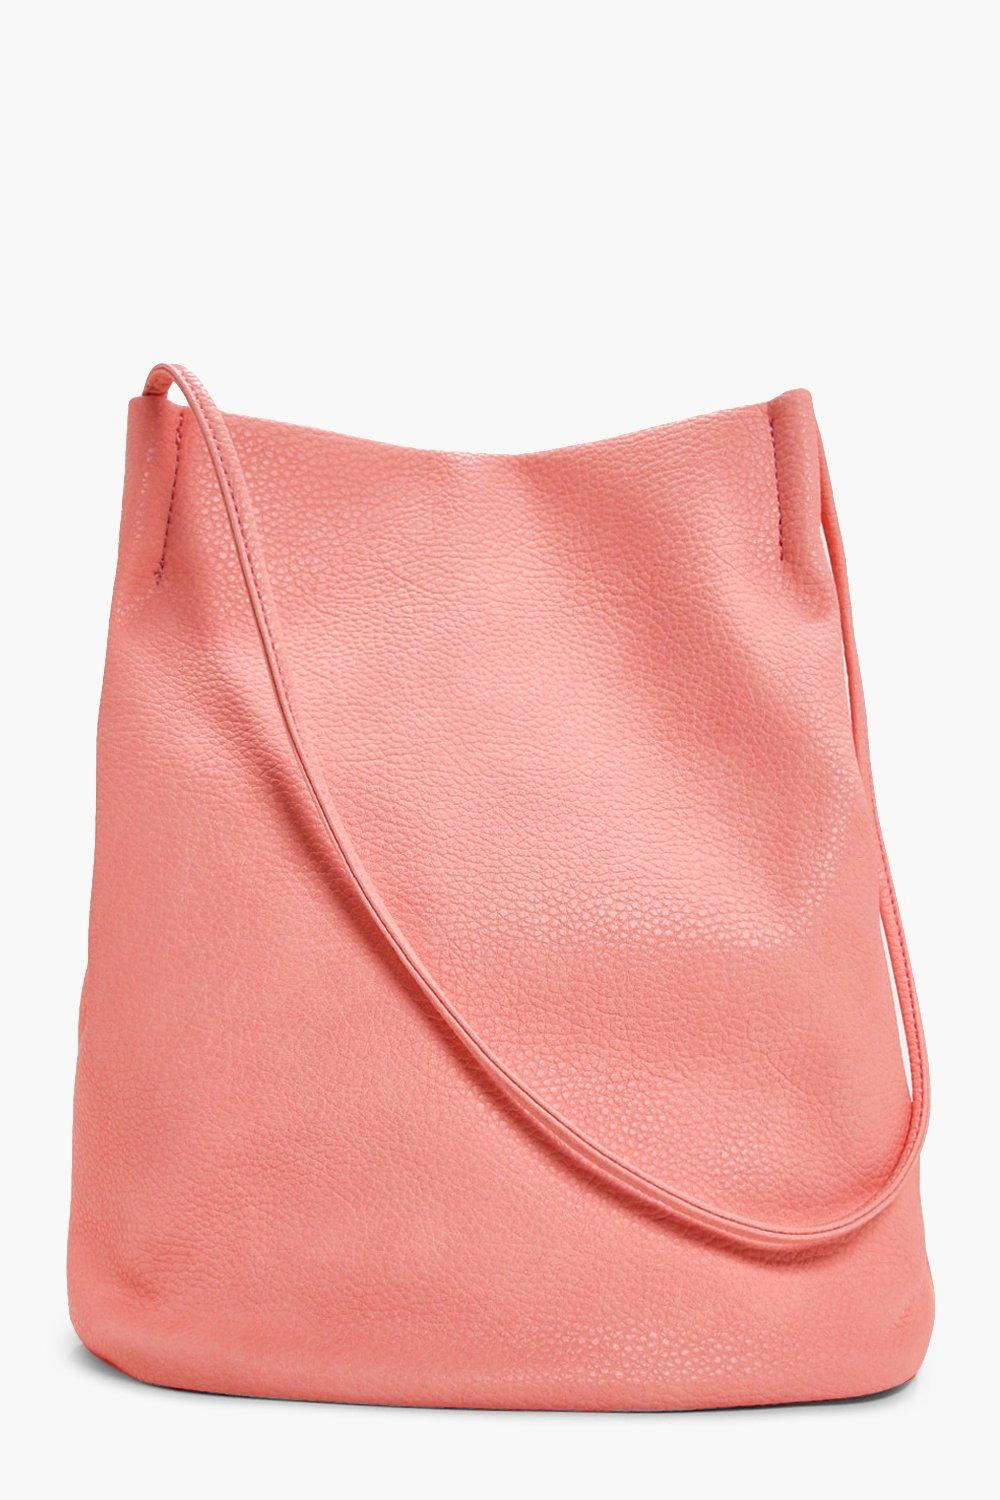 Duffle Bag Cross Body - peach - Leila Duffle Bag C